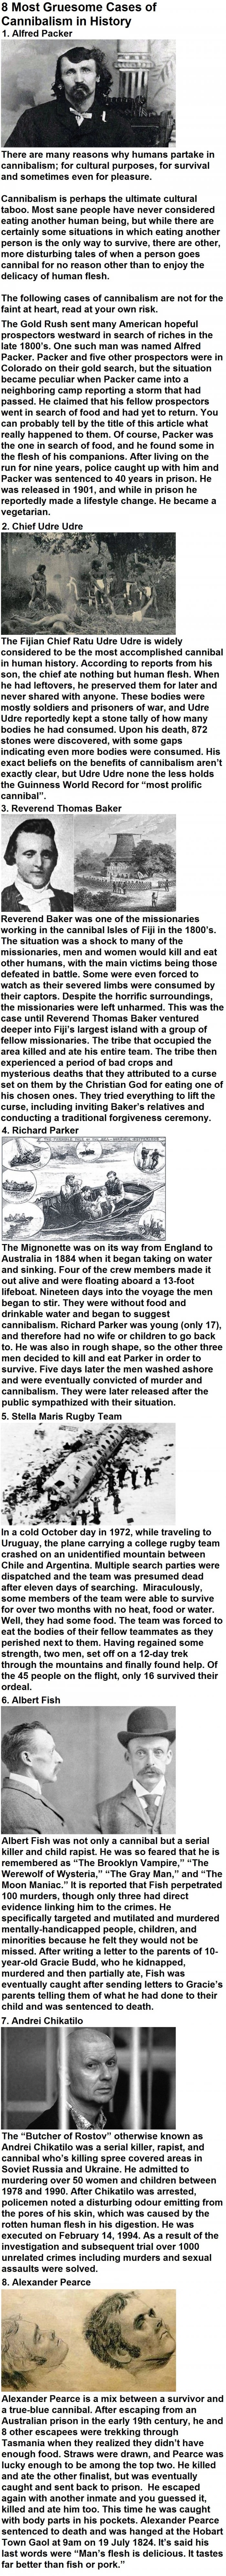 Gruesome cases of cannibalism